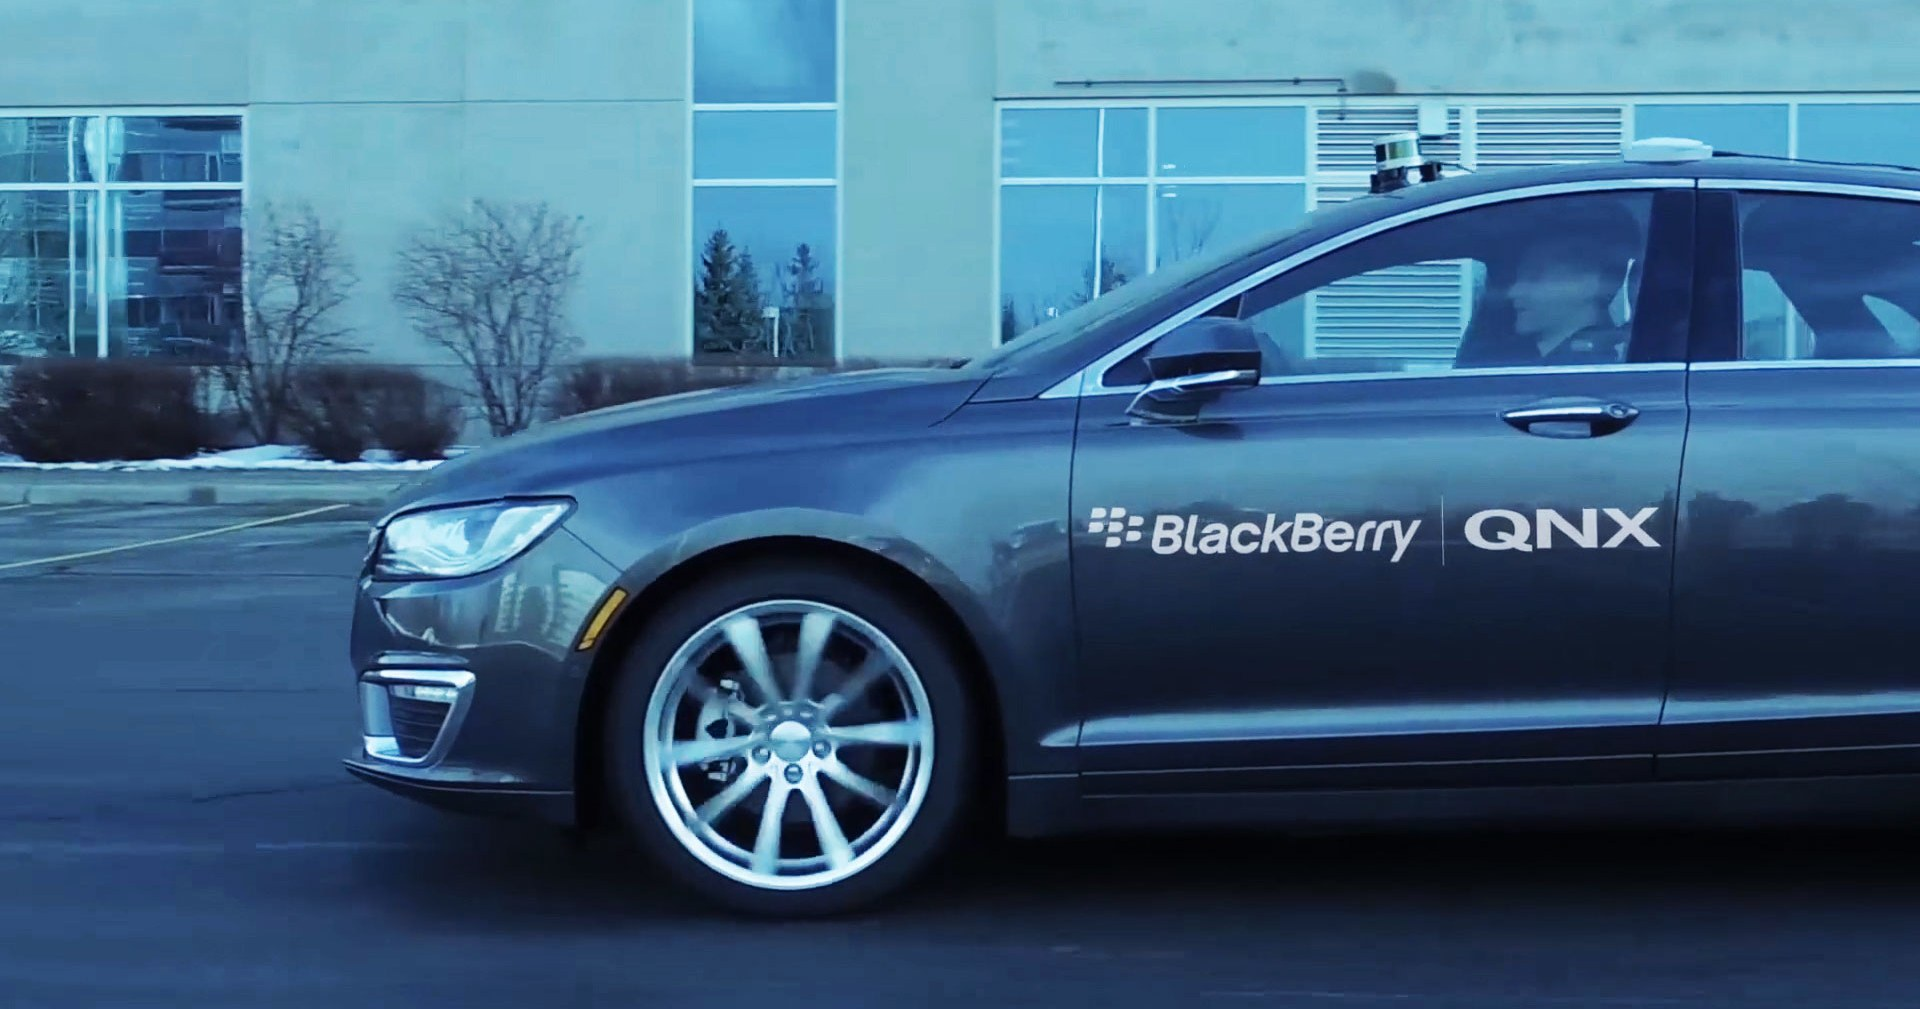 BlackBerry Explores Strategic Alliance With Delphi Automotive